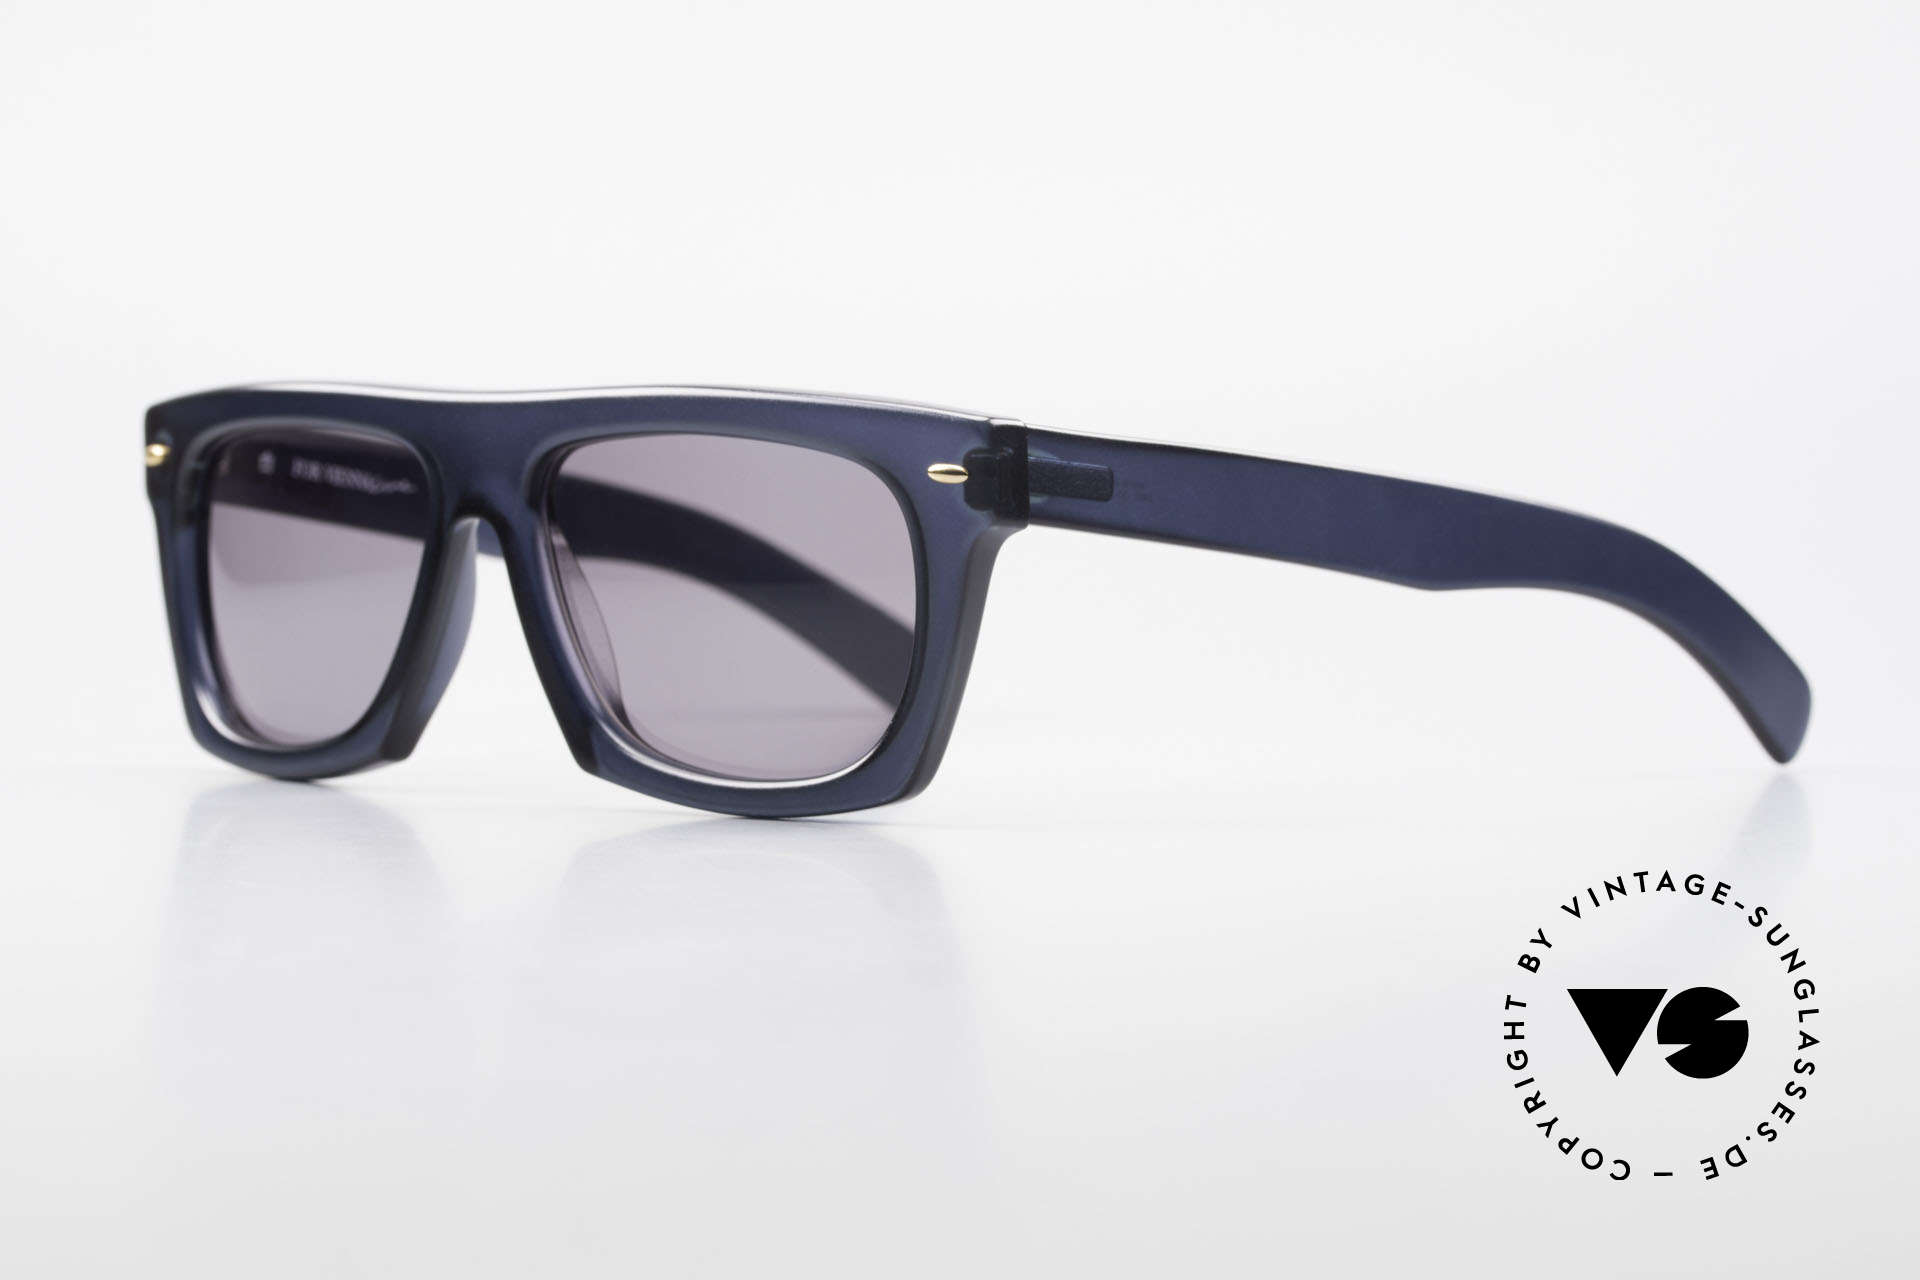 Paloma Picasso 1460 90's Original Designer Shades, striking 90's frame in cooperation with ViennaLine, Made for Men and Women